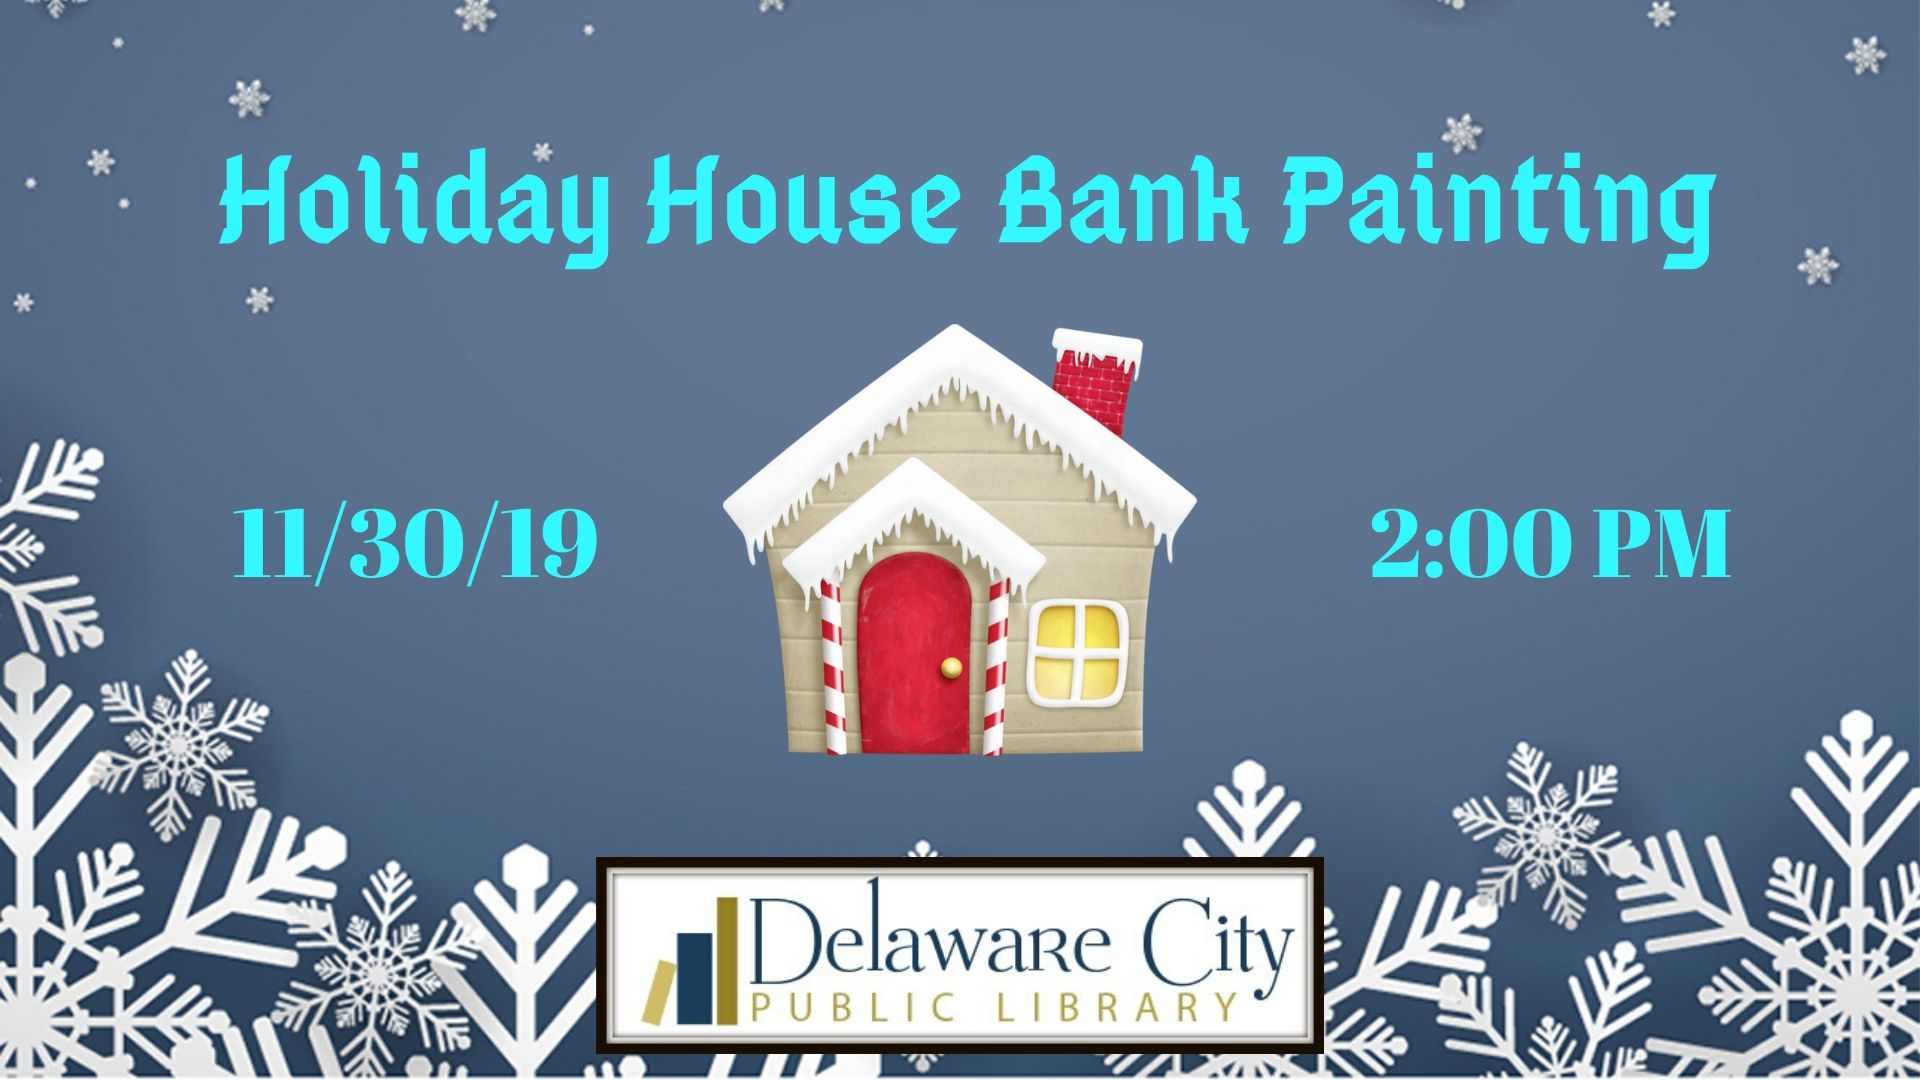 Holiday House Bank Painting